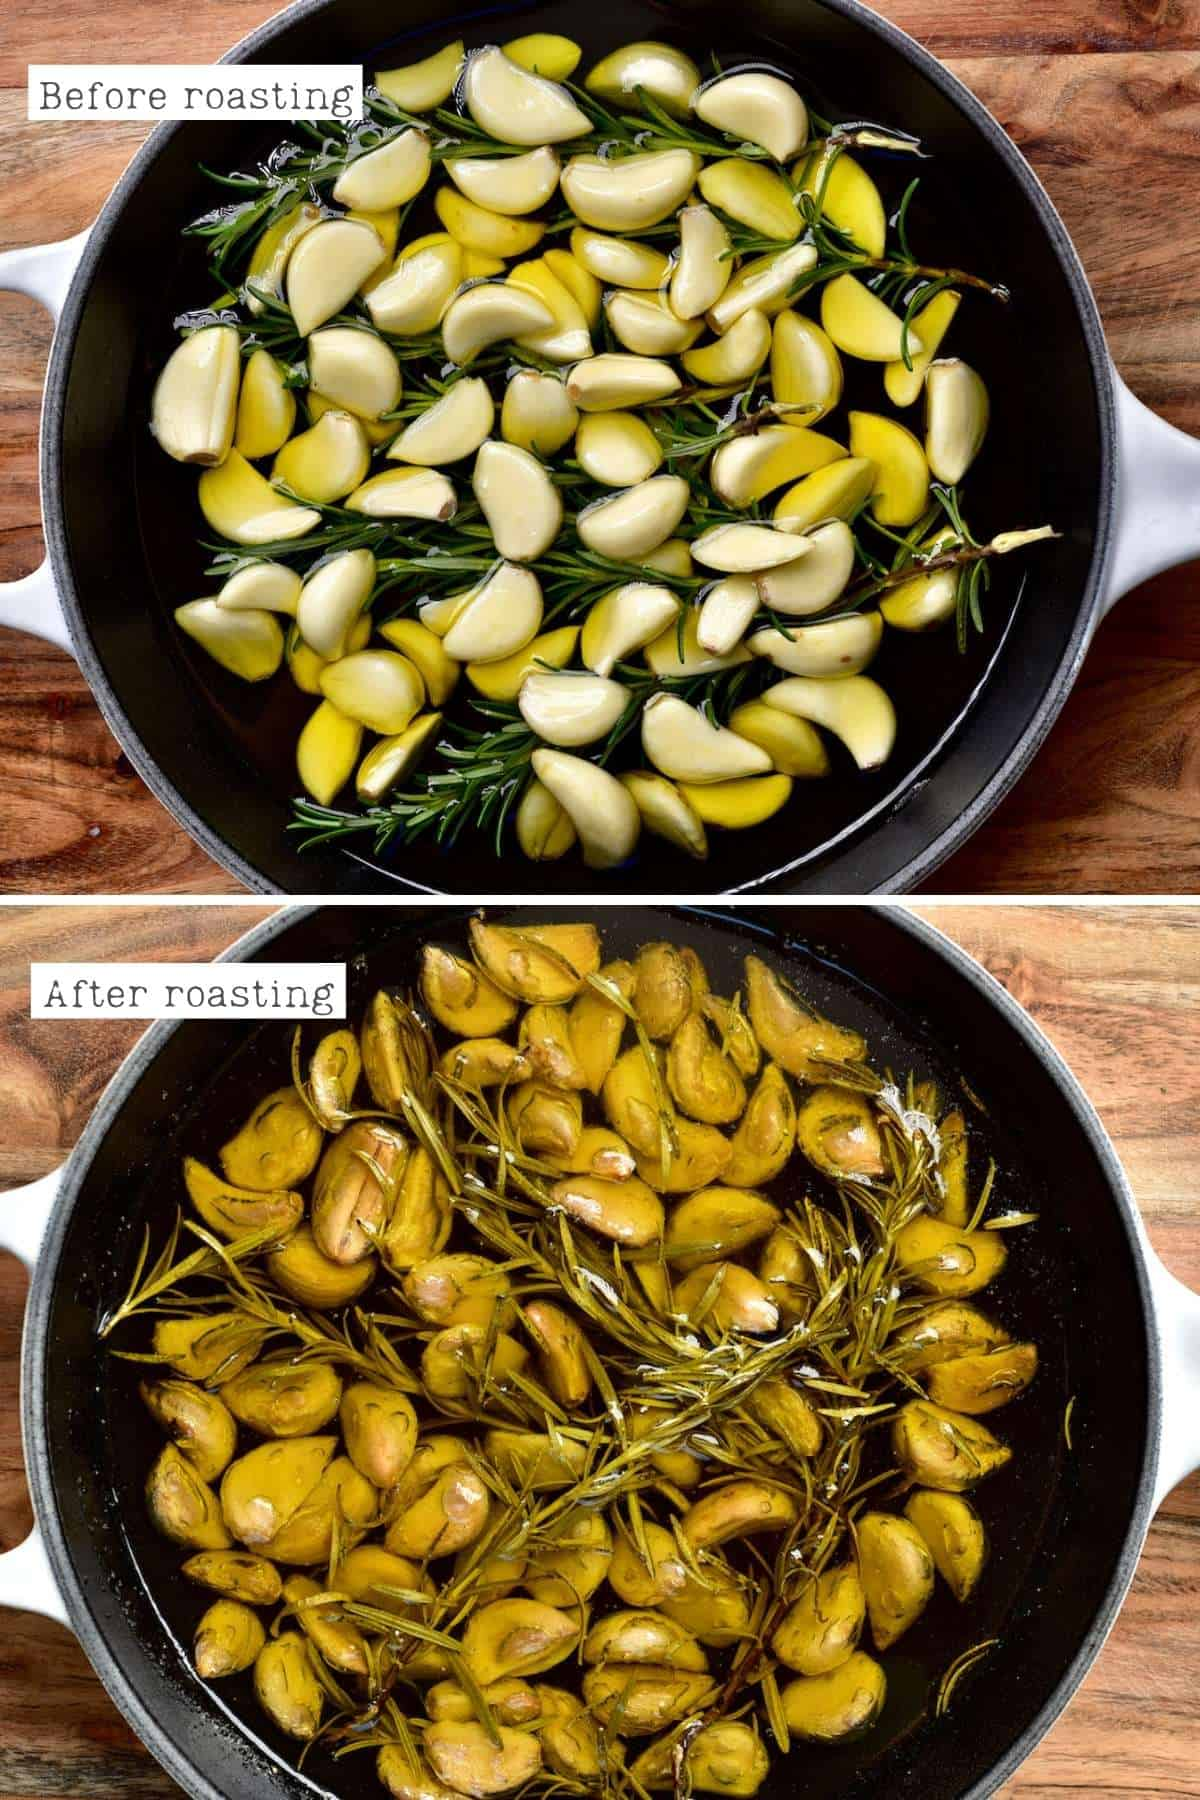 Before and after roasting garlic